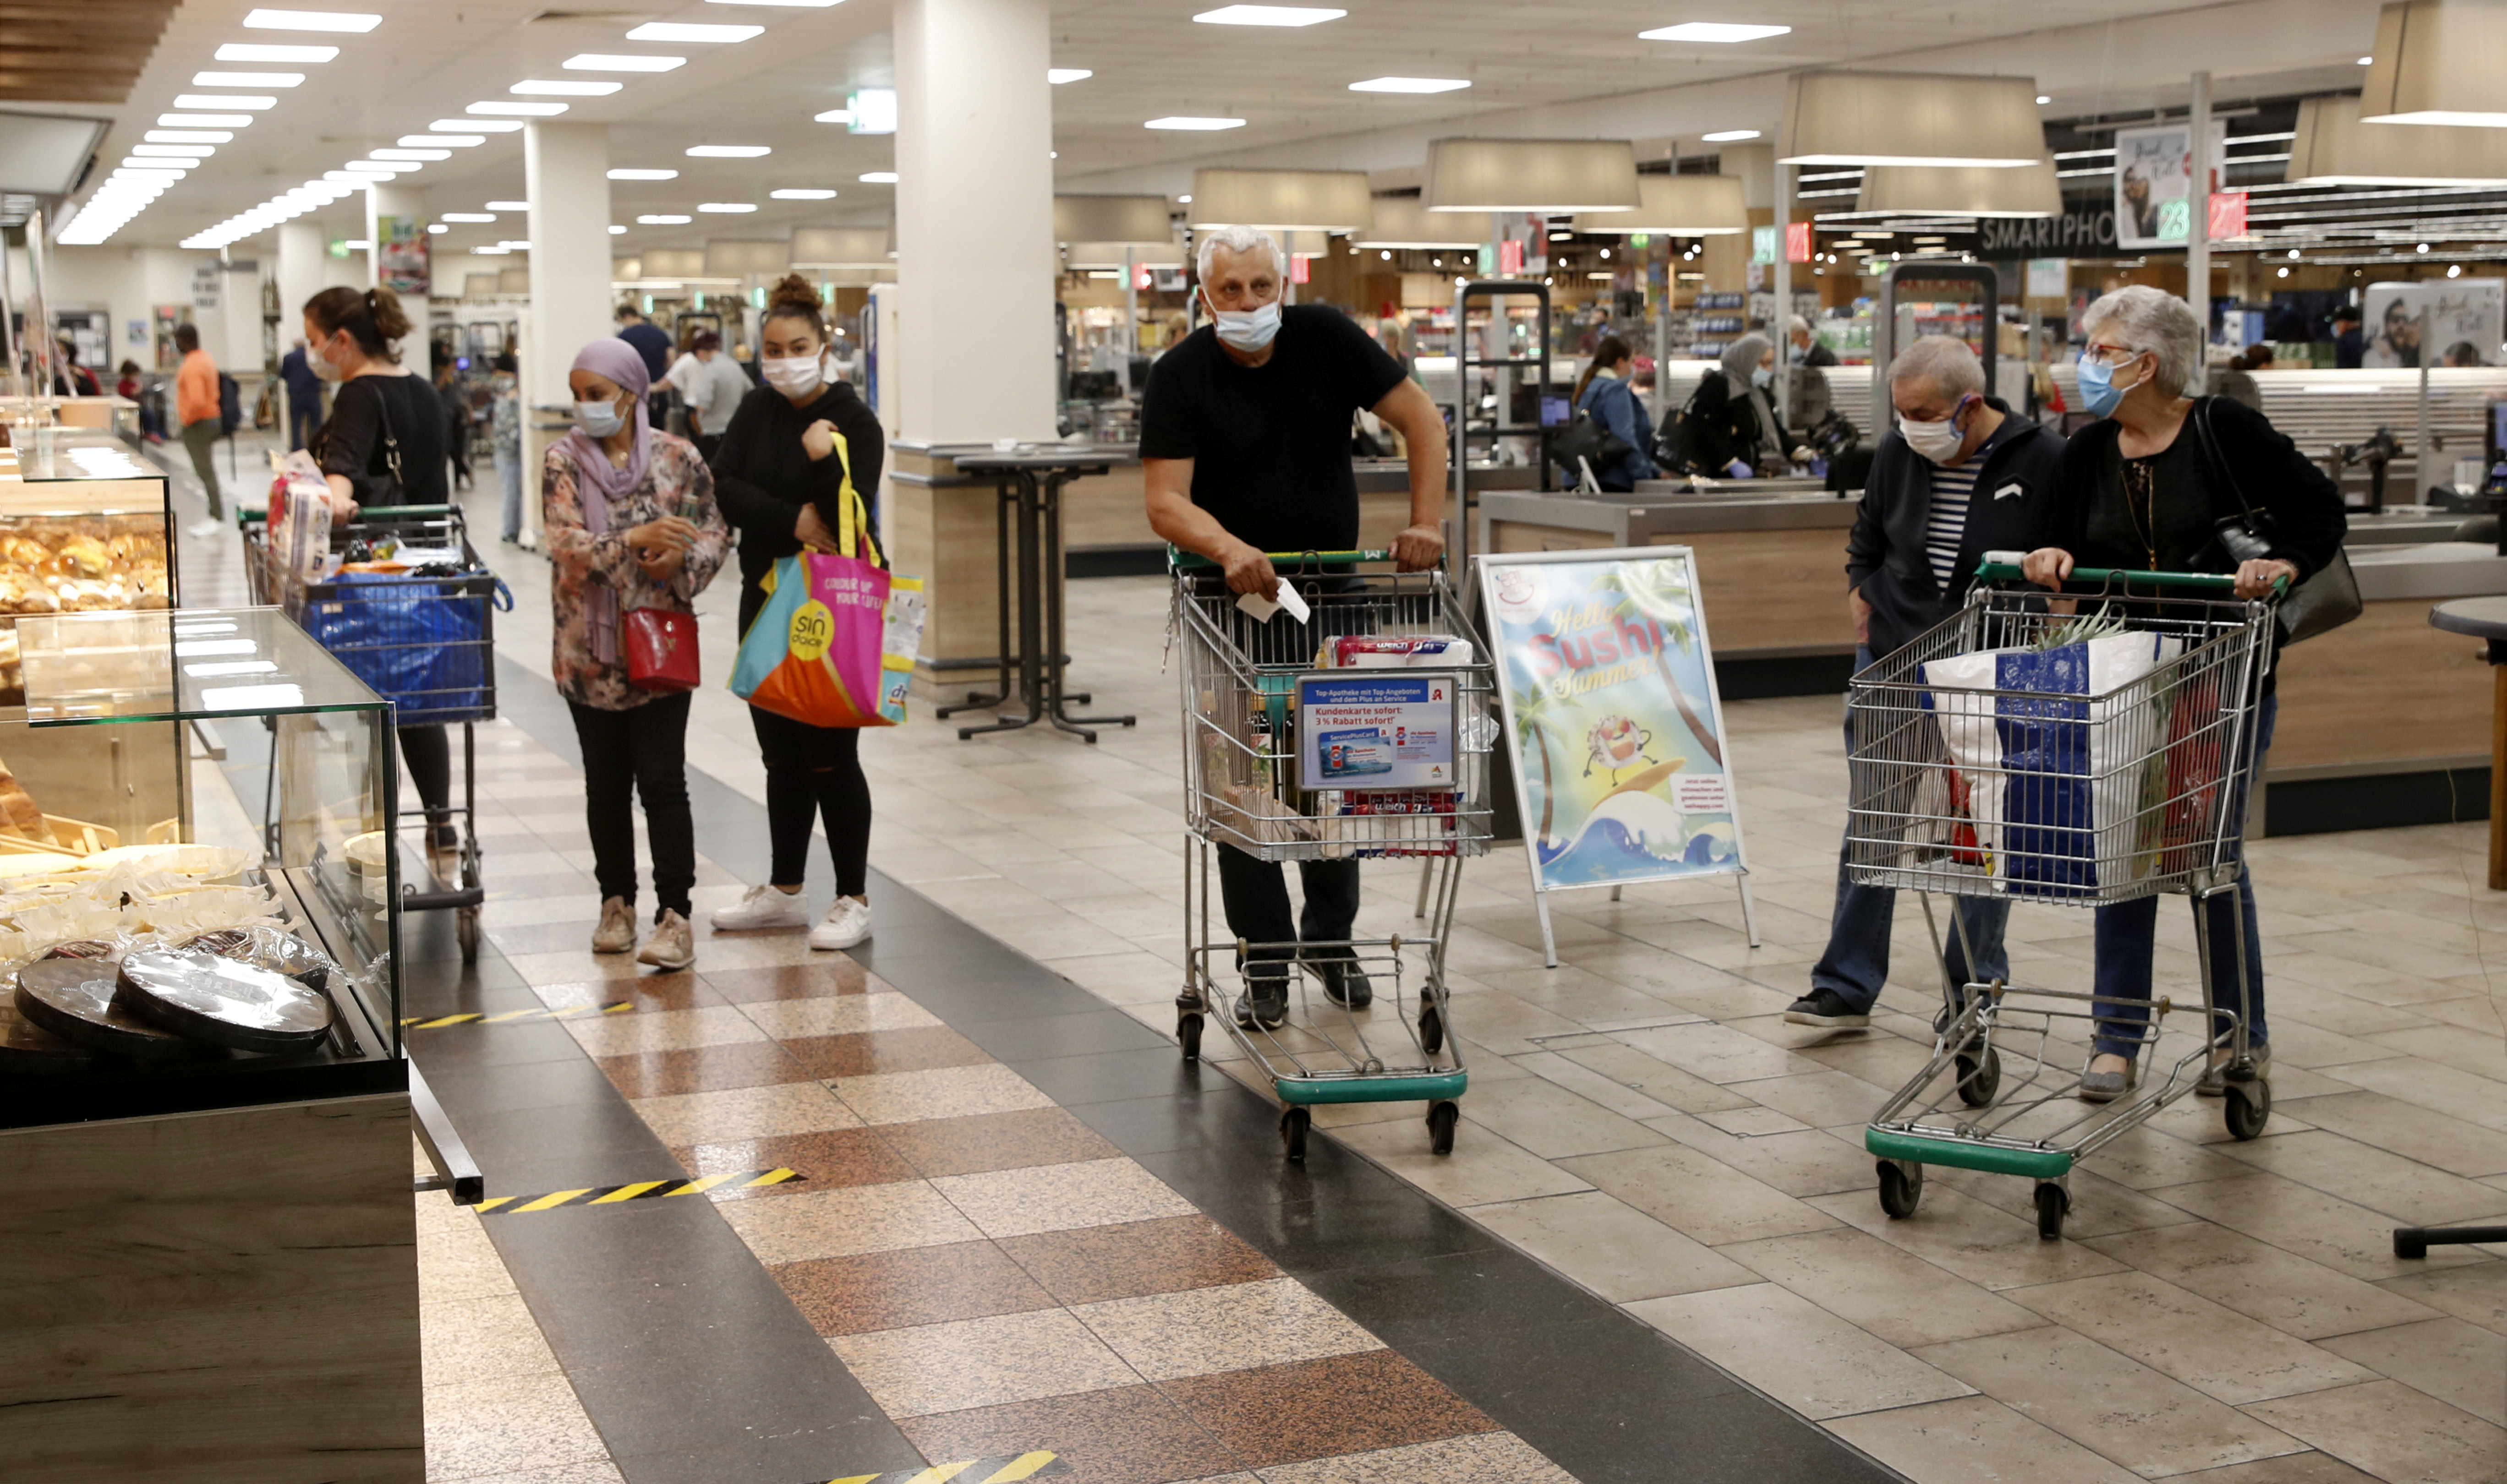 People are seen in a supermarket after the re-opening of the borders, amid the coronavirus disease (COVID-19) outbreak, at the Rhein Center shopping mall in Weil am Rhein, Germany June 15, 2020.     REUTERS/Arnd Wiegmann/File photo